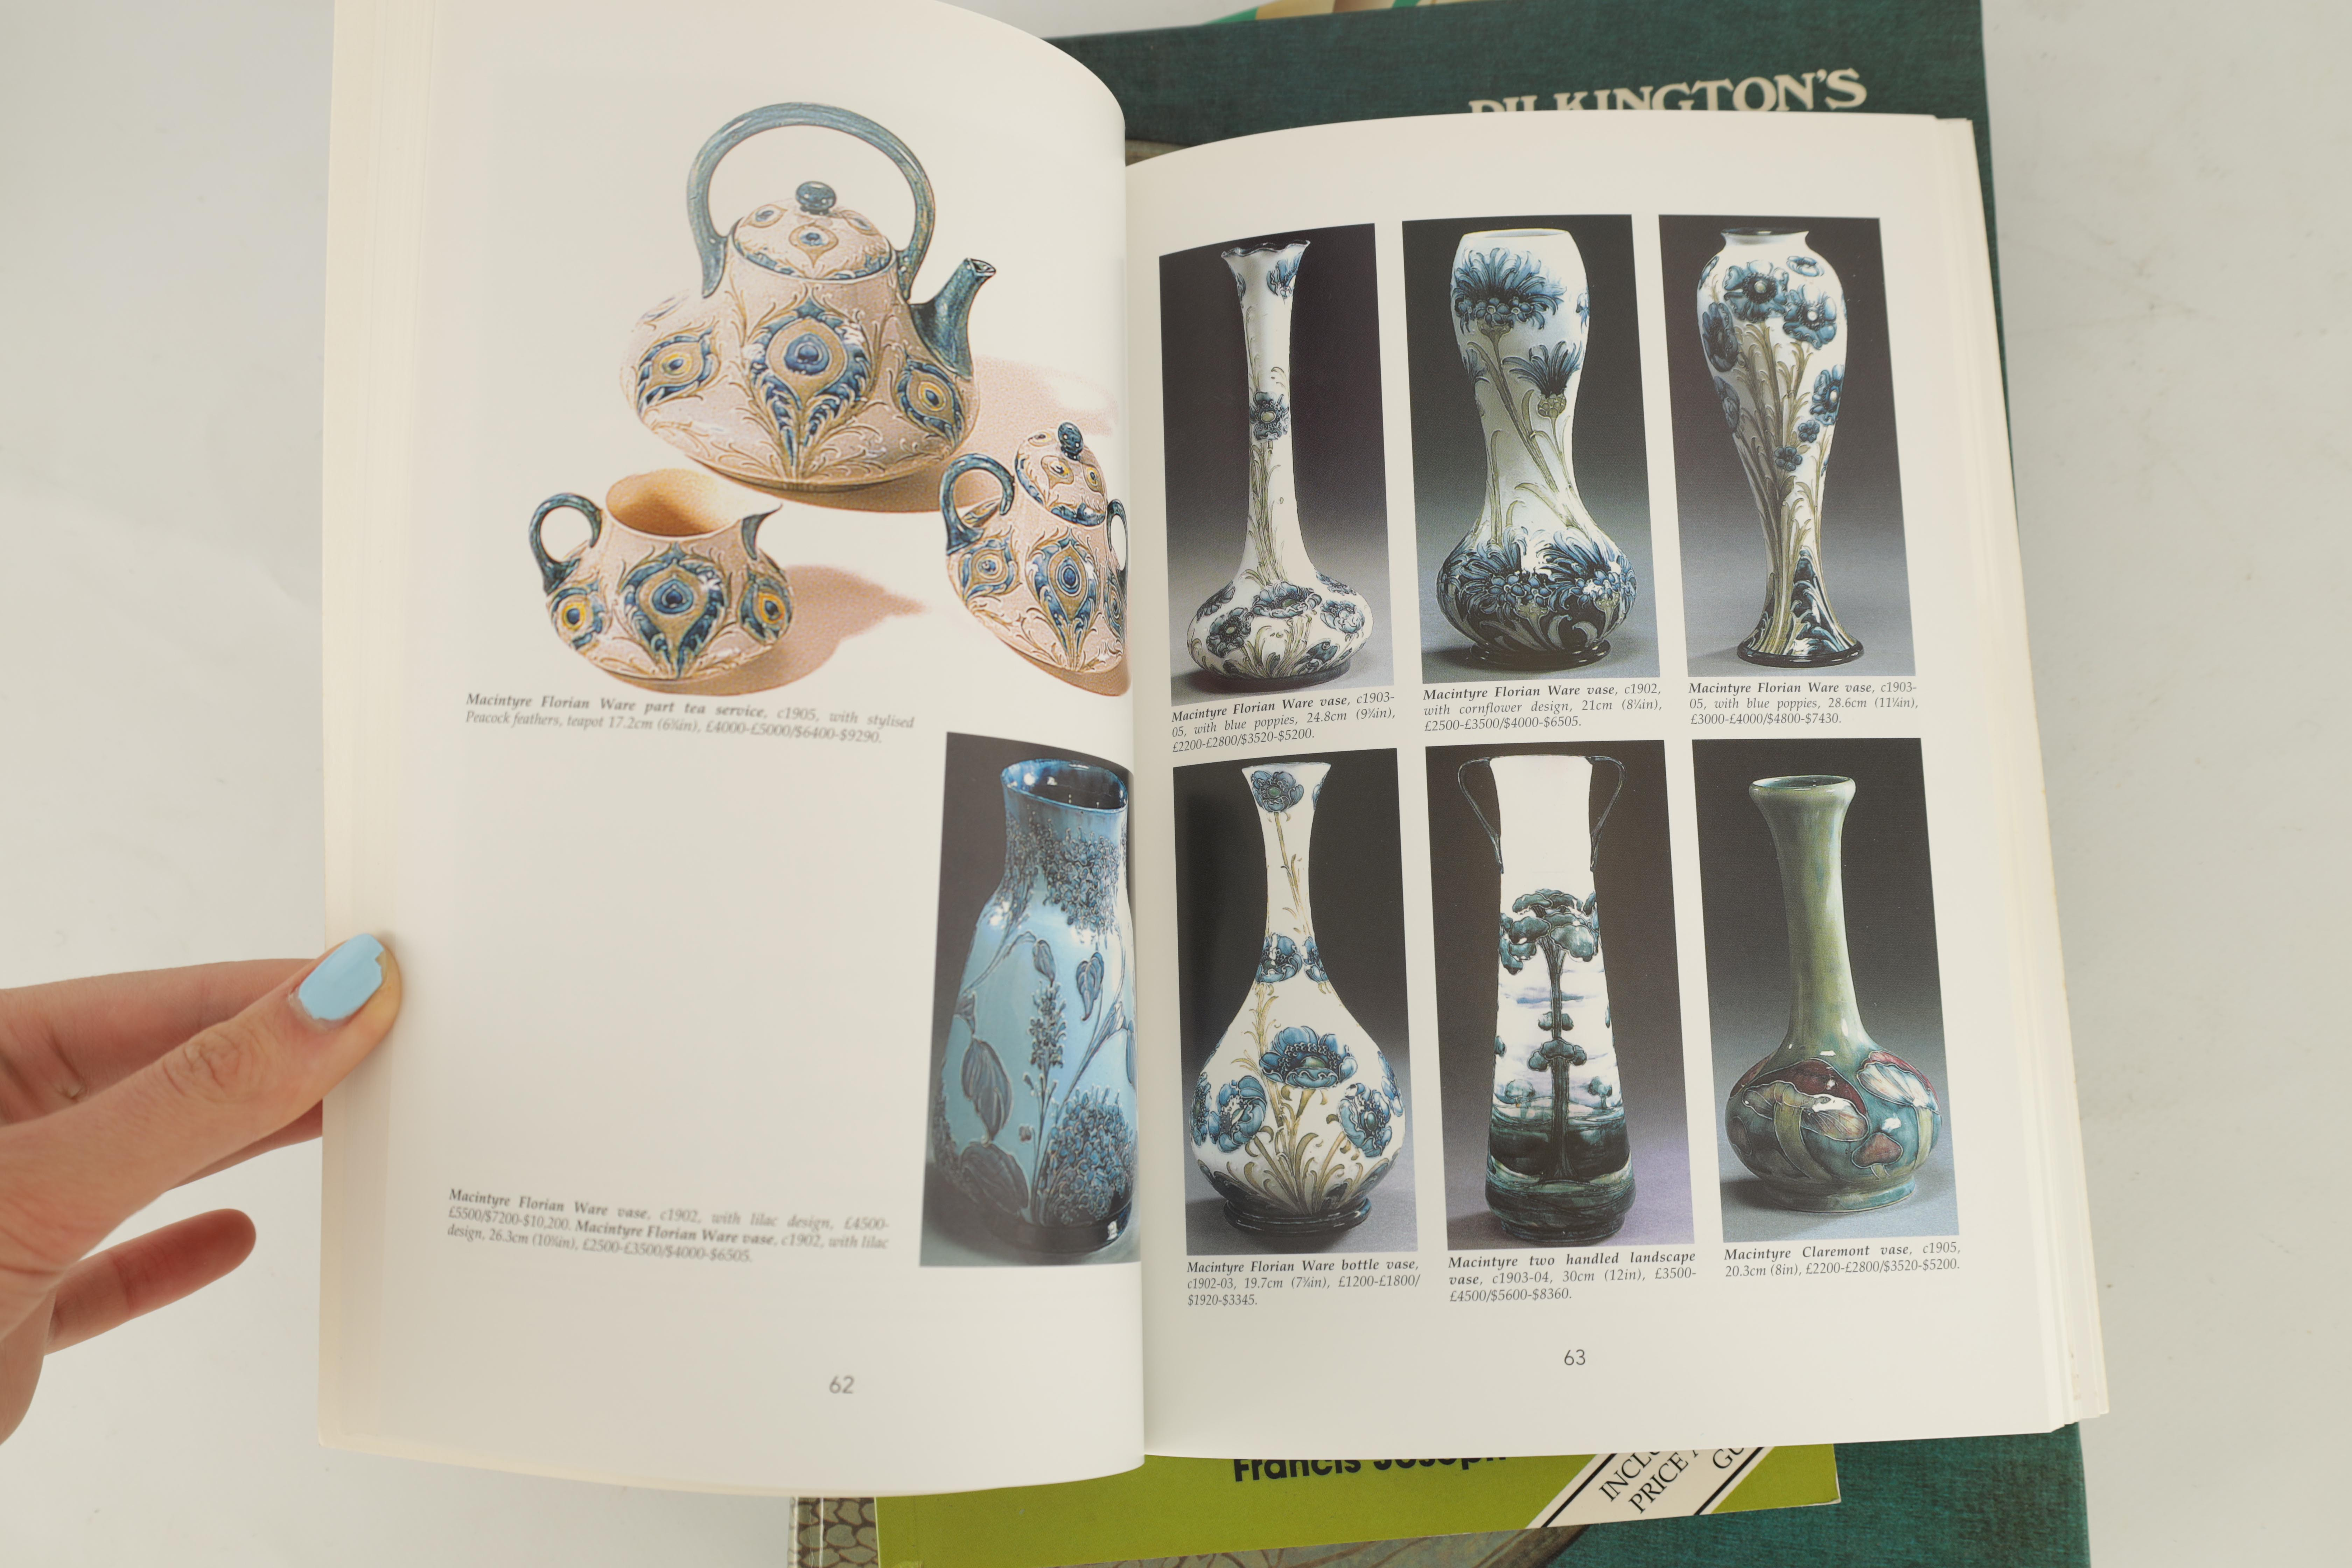 A COLLECTION OF EIGHT CERAMIC REFERENCE BOOKS including Poole pottery by Lesley Haward edited by - Image 5 of 9